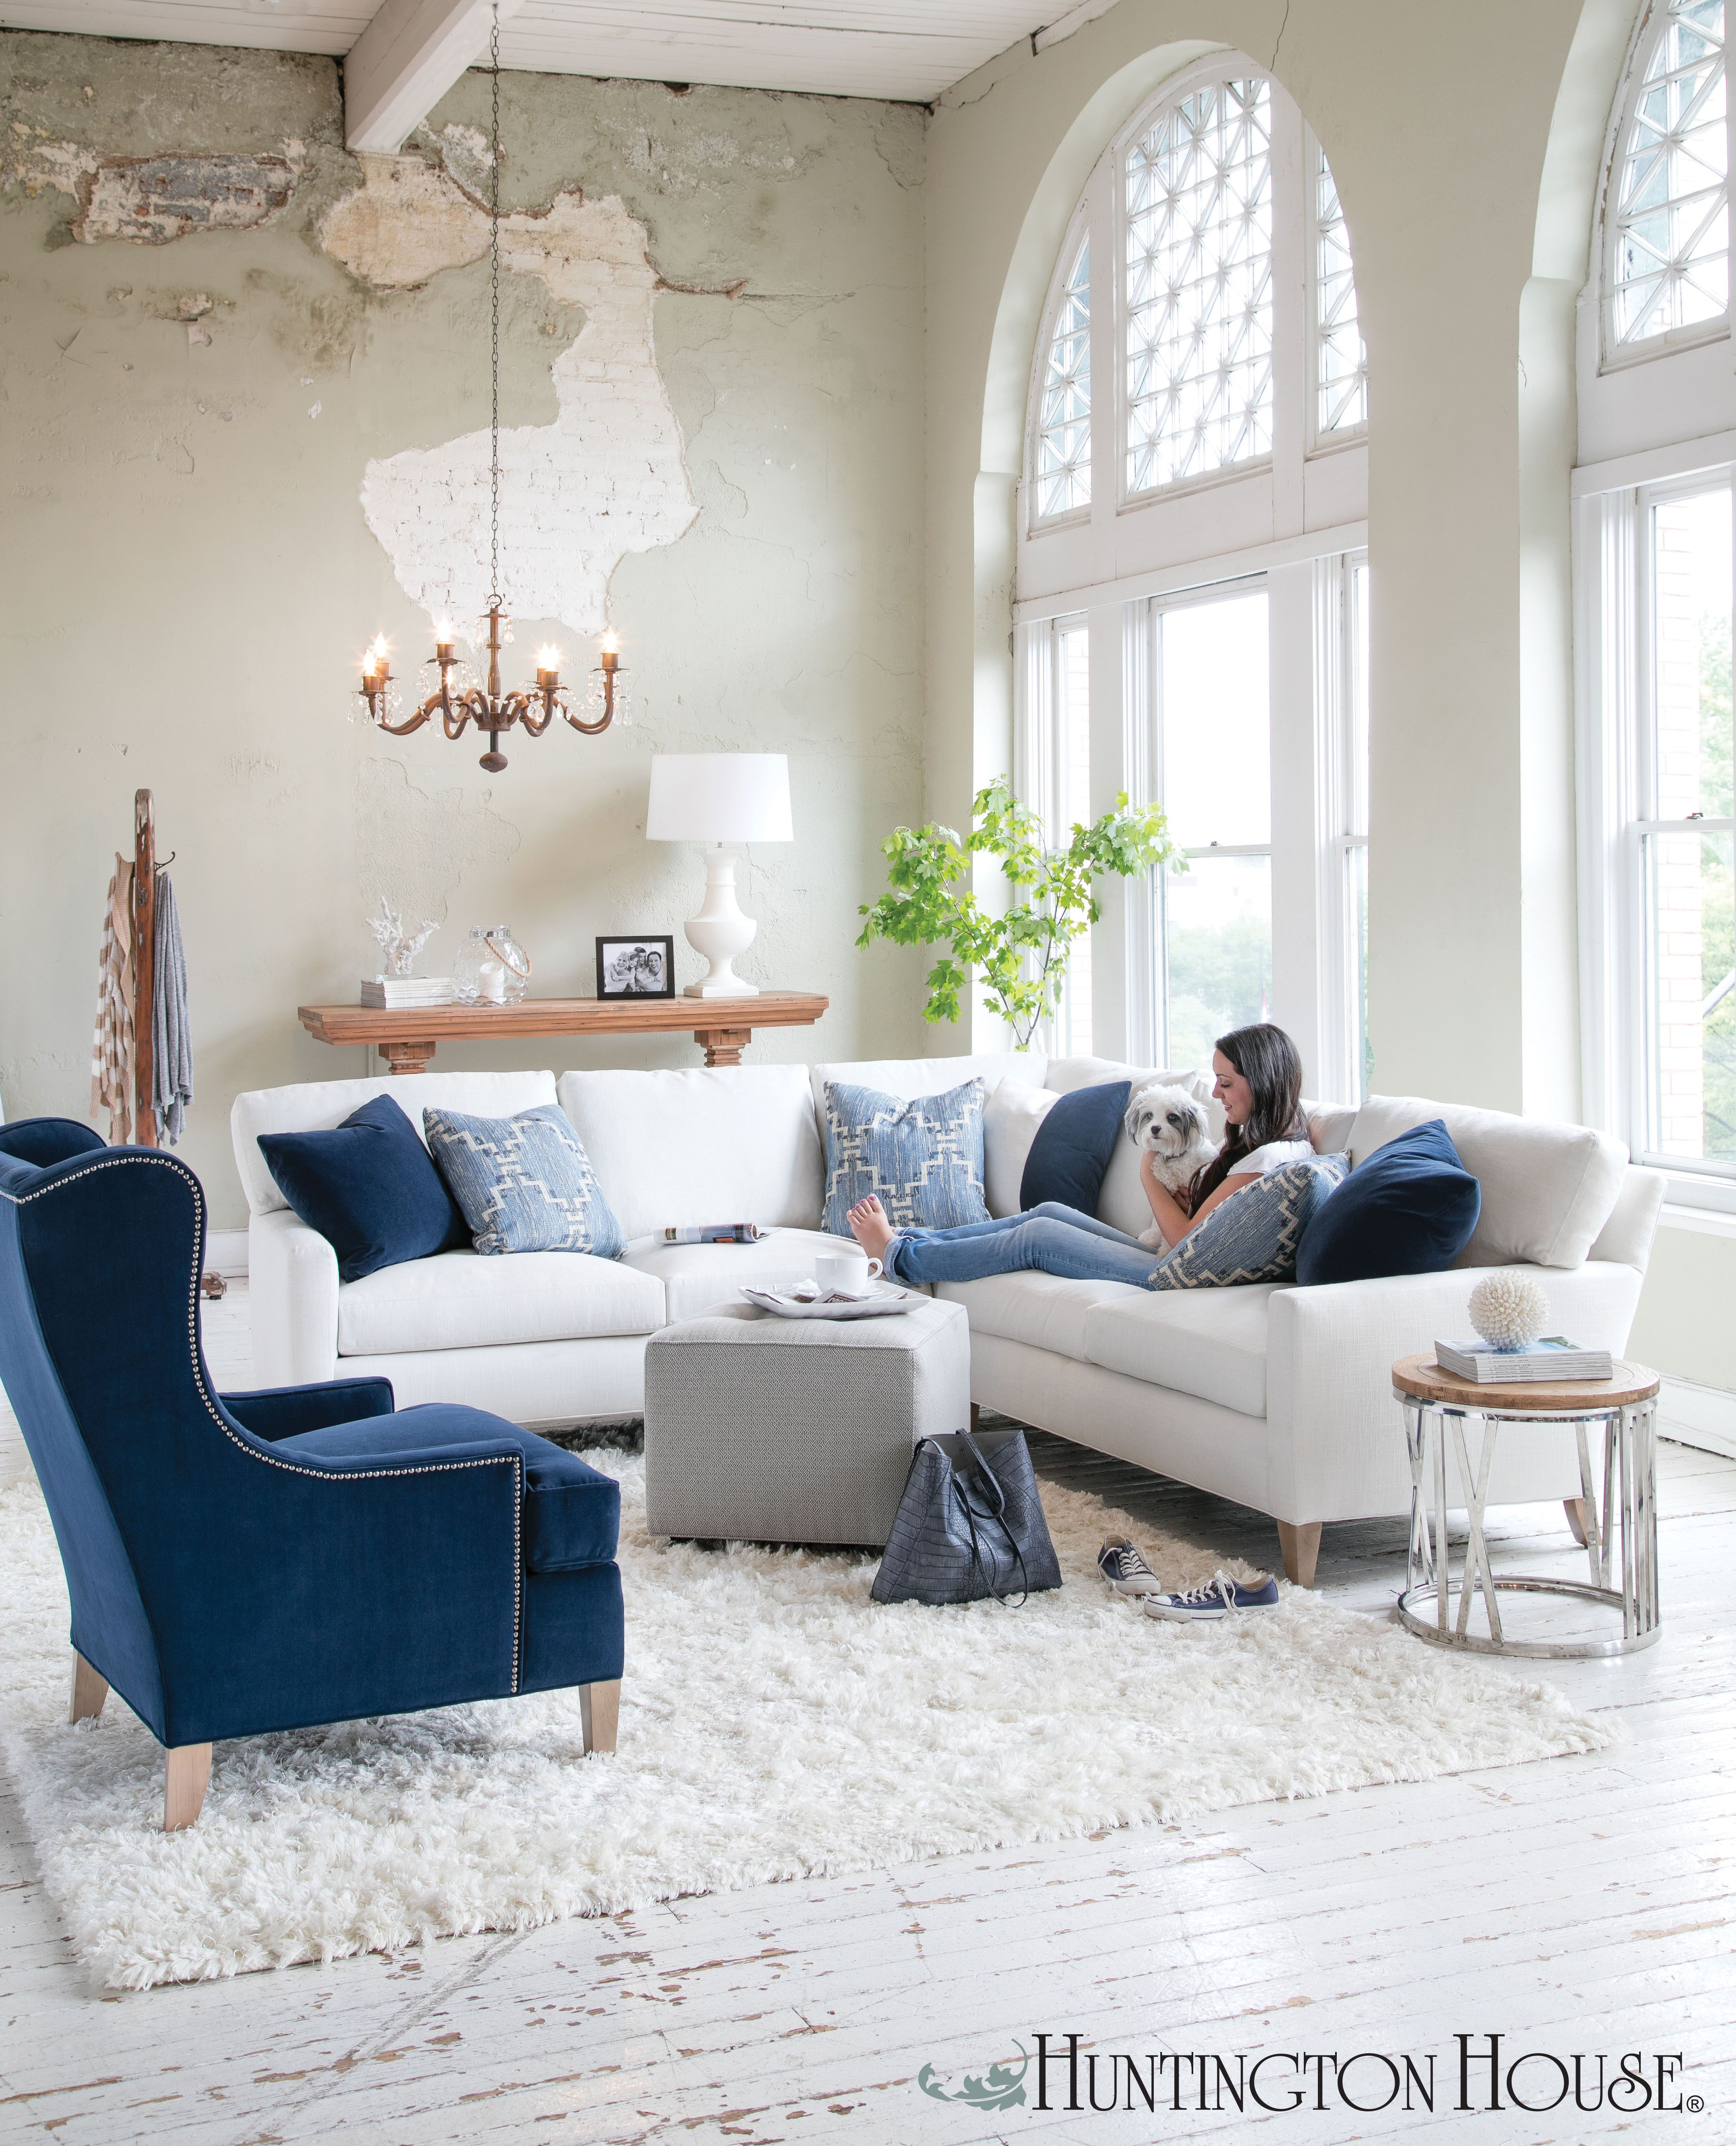 You Can Finally Have That White Sofa Using Soft Stain Resistant